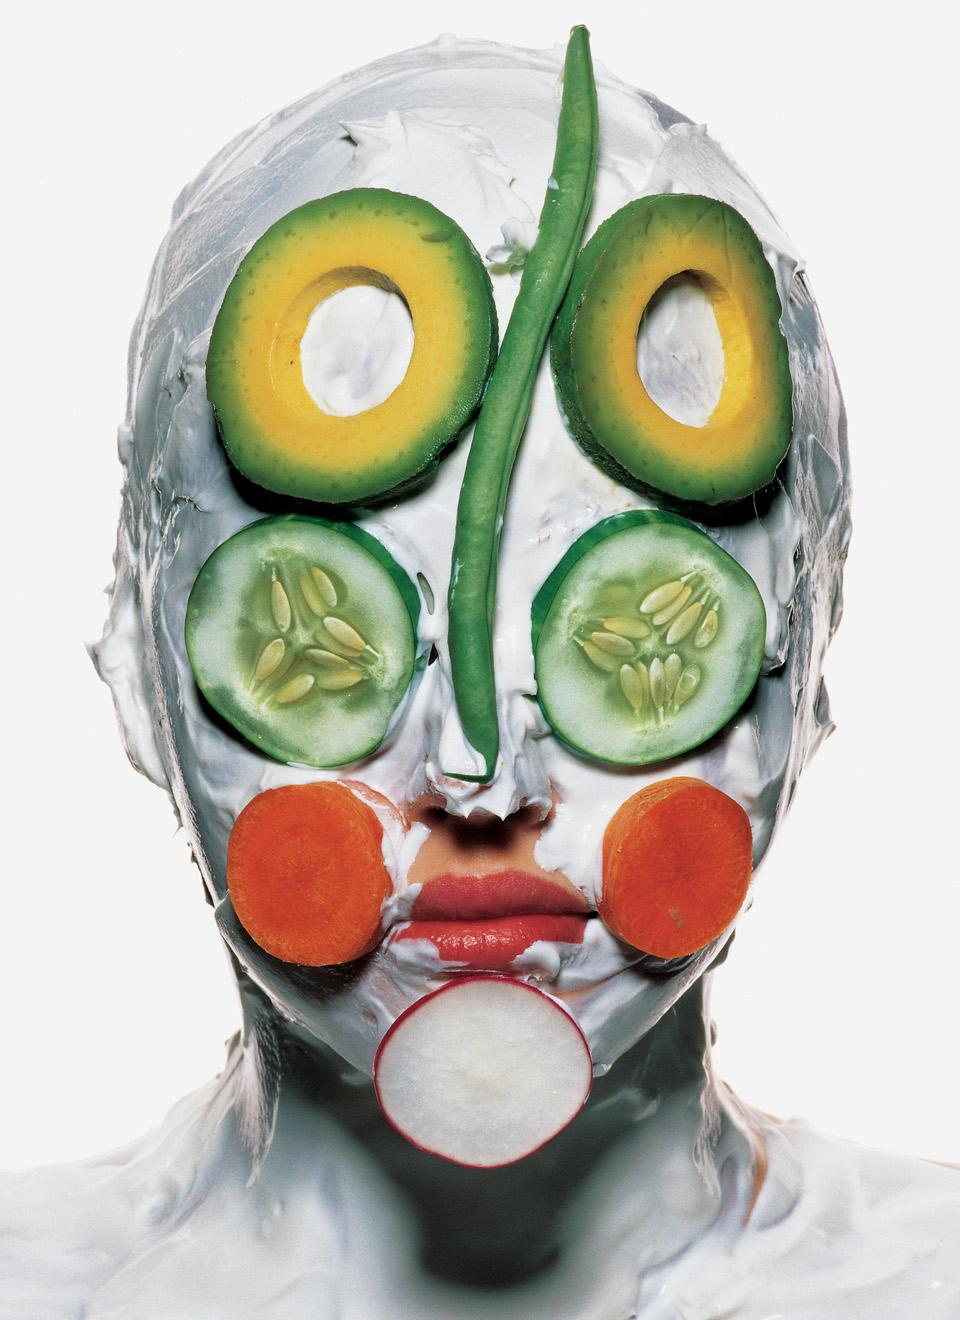 <i>Vegetable Face,</i> photo by Irving Penn, 1995. © The Irving Penn Foundation.